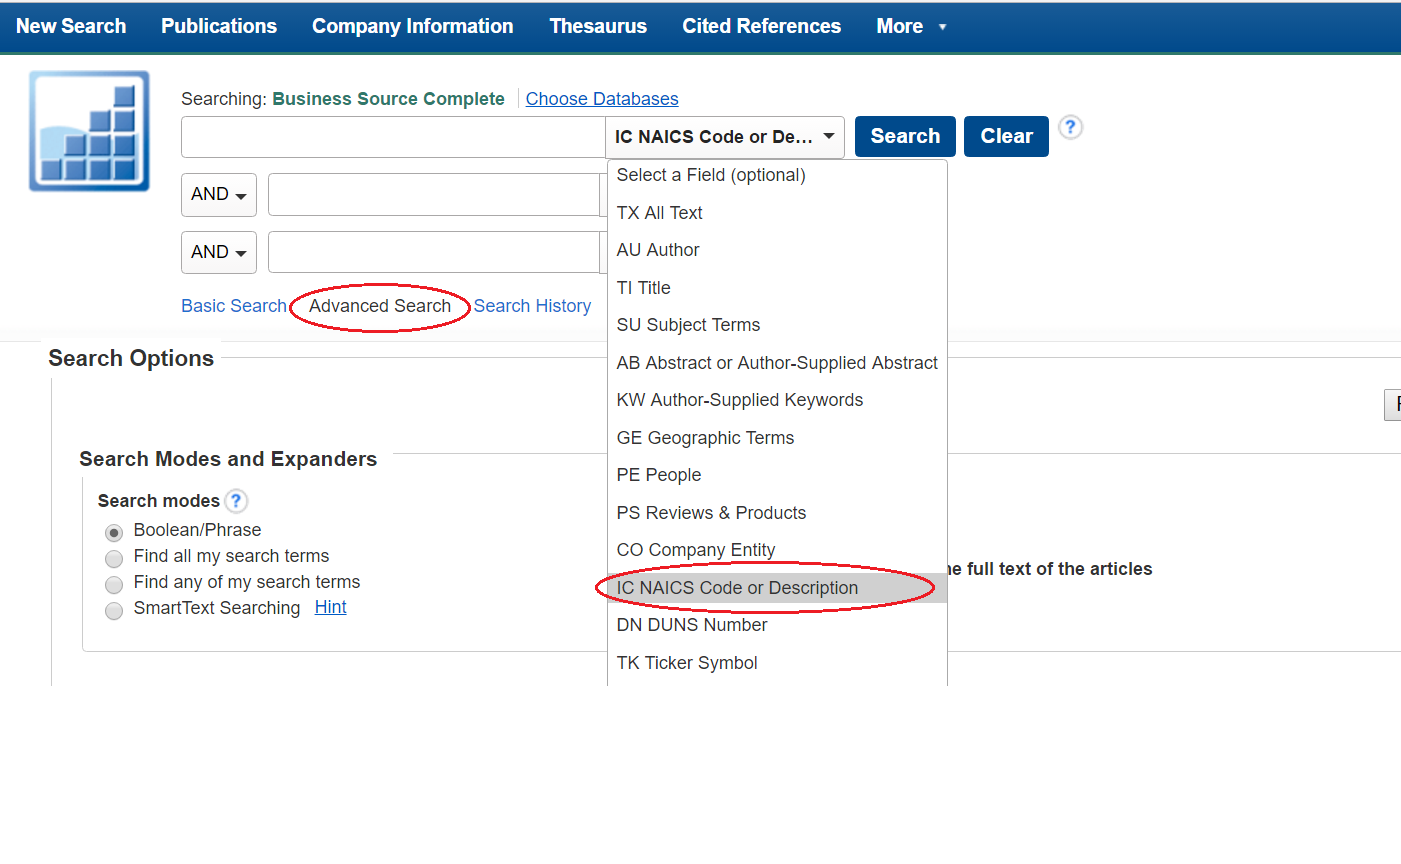 screenshot of Business Source Complete advanced search by NAICS Code